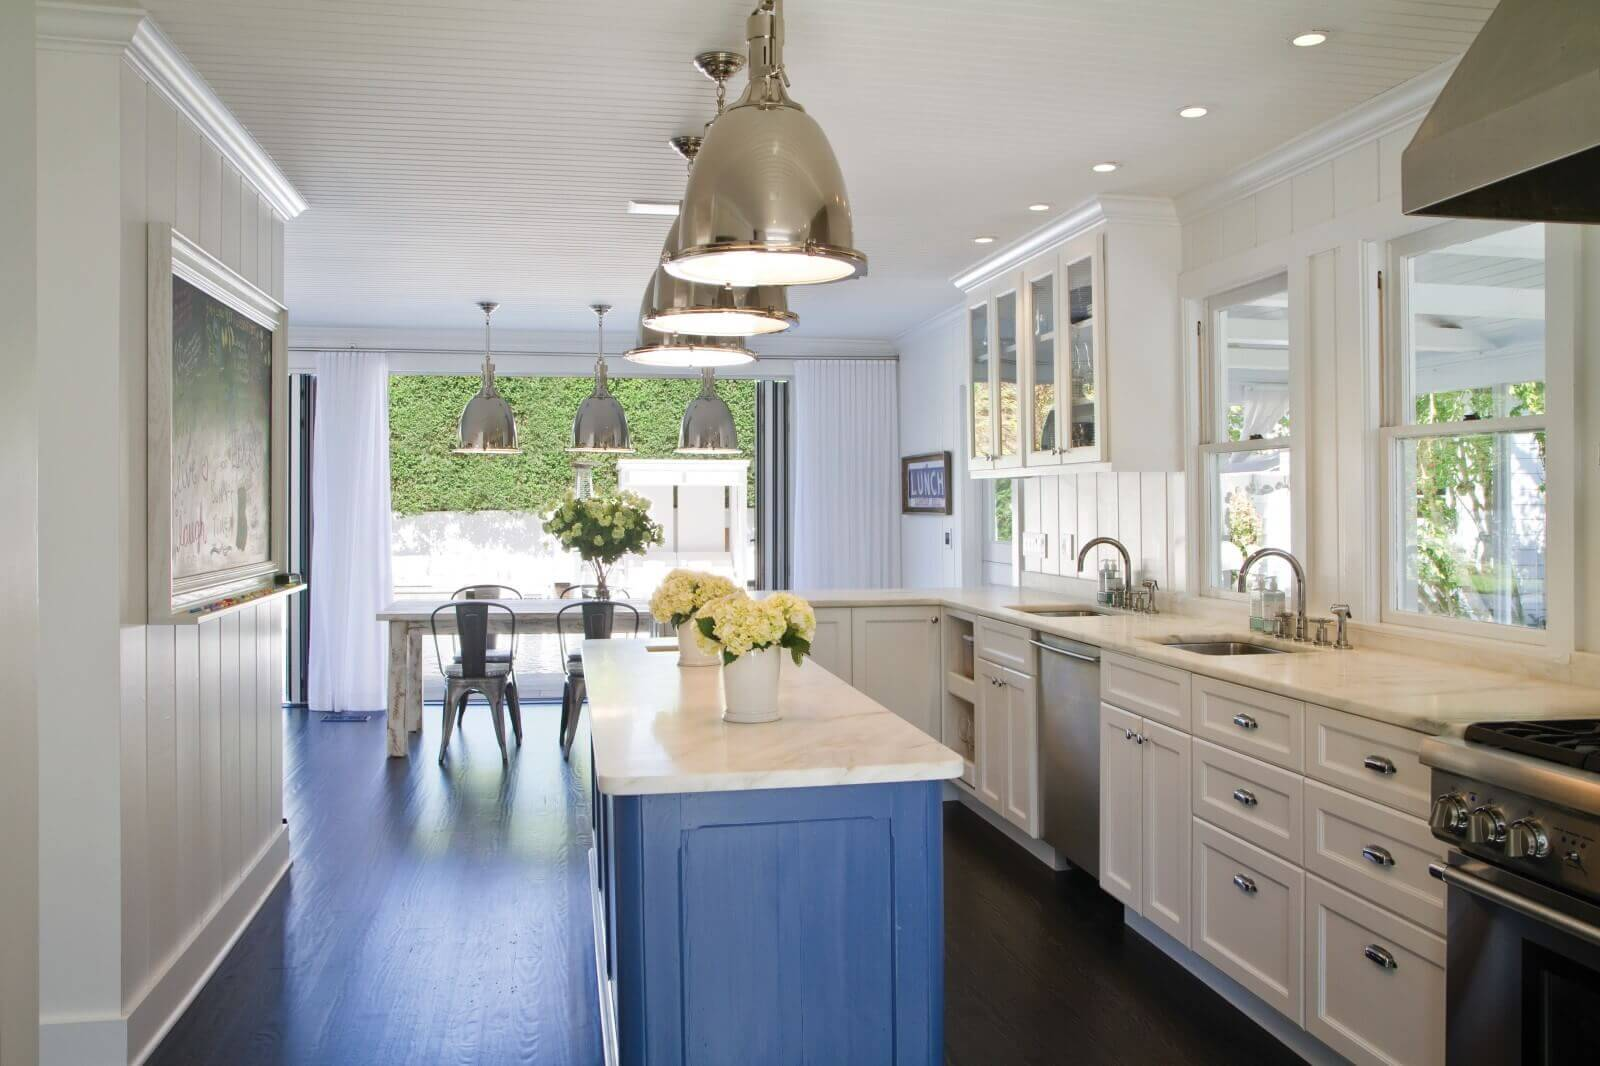 Beach styles are usually open concepts, and nothing can do it better than a great open room like the kitchen or dining area. Blue throughout this open kitchen creates a very nice white beach style kitchen design with island